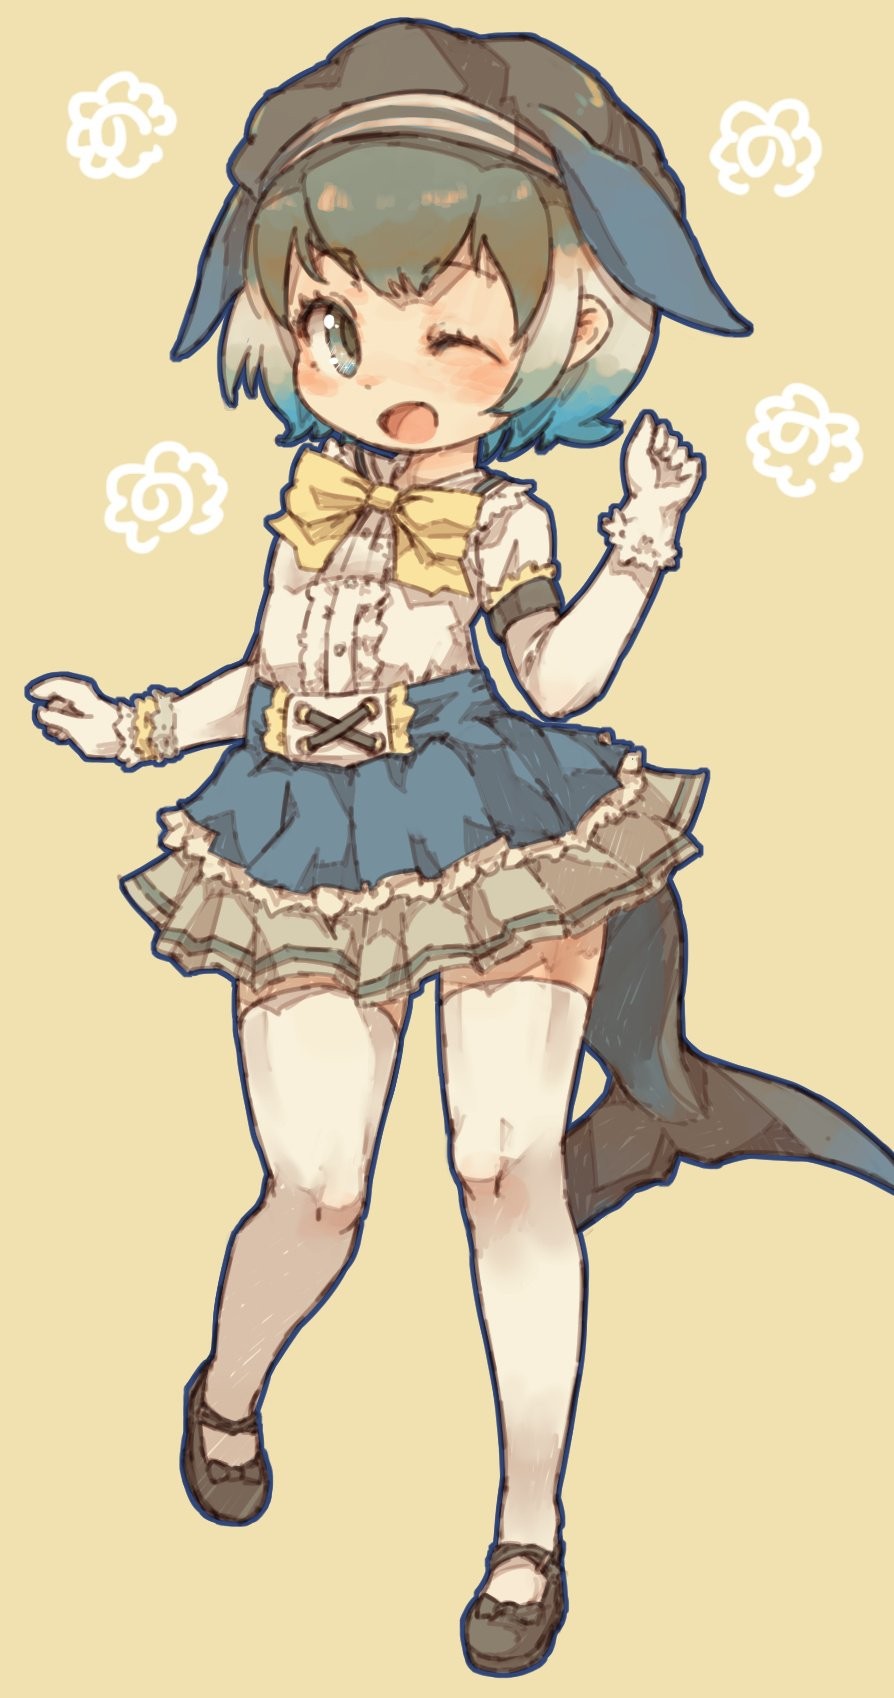 1girl alternate_costume beret black_bow black_footwear black_headwear blonde_hair blue_eyes blue_hair blue_skirt bow bowtie center_frills commentary_request common_dolphin_(kemono_friends) dolphin_fin dolphin_tail elbow_gloves eyebrows_visible_through_hair frilled_skirt frills fur_trim gloves green_hair hat highres kemono_friends kolshica mary_janes multicolored_hair one_eye_closed open_mouth pleated_skirt shirt shoe_bow shoes short_hair short_sleeves simple_background skirt solo standing standing_on_one_leg t-shirt thigh-highs white_frills white_gloves white_hair white_legwear white_shirt yellow_bow yellow_neckwear zettai_ryouiki